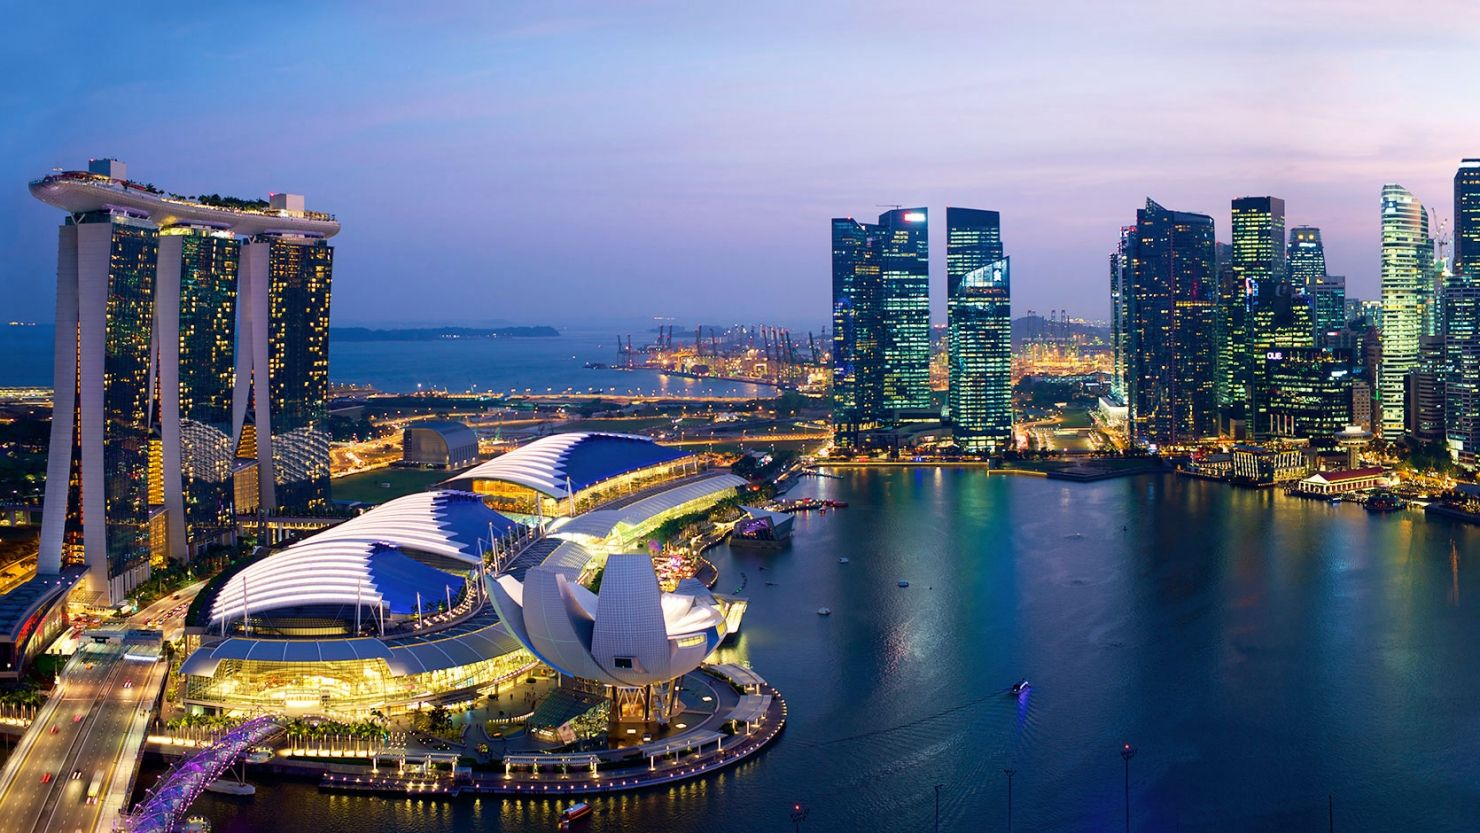 marina bay singapore is the centre of all things modern and super  - marina bay singapore is the centre of all things modern and superstylish